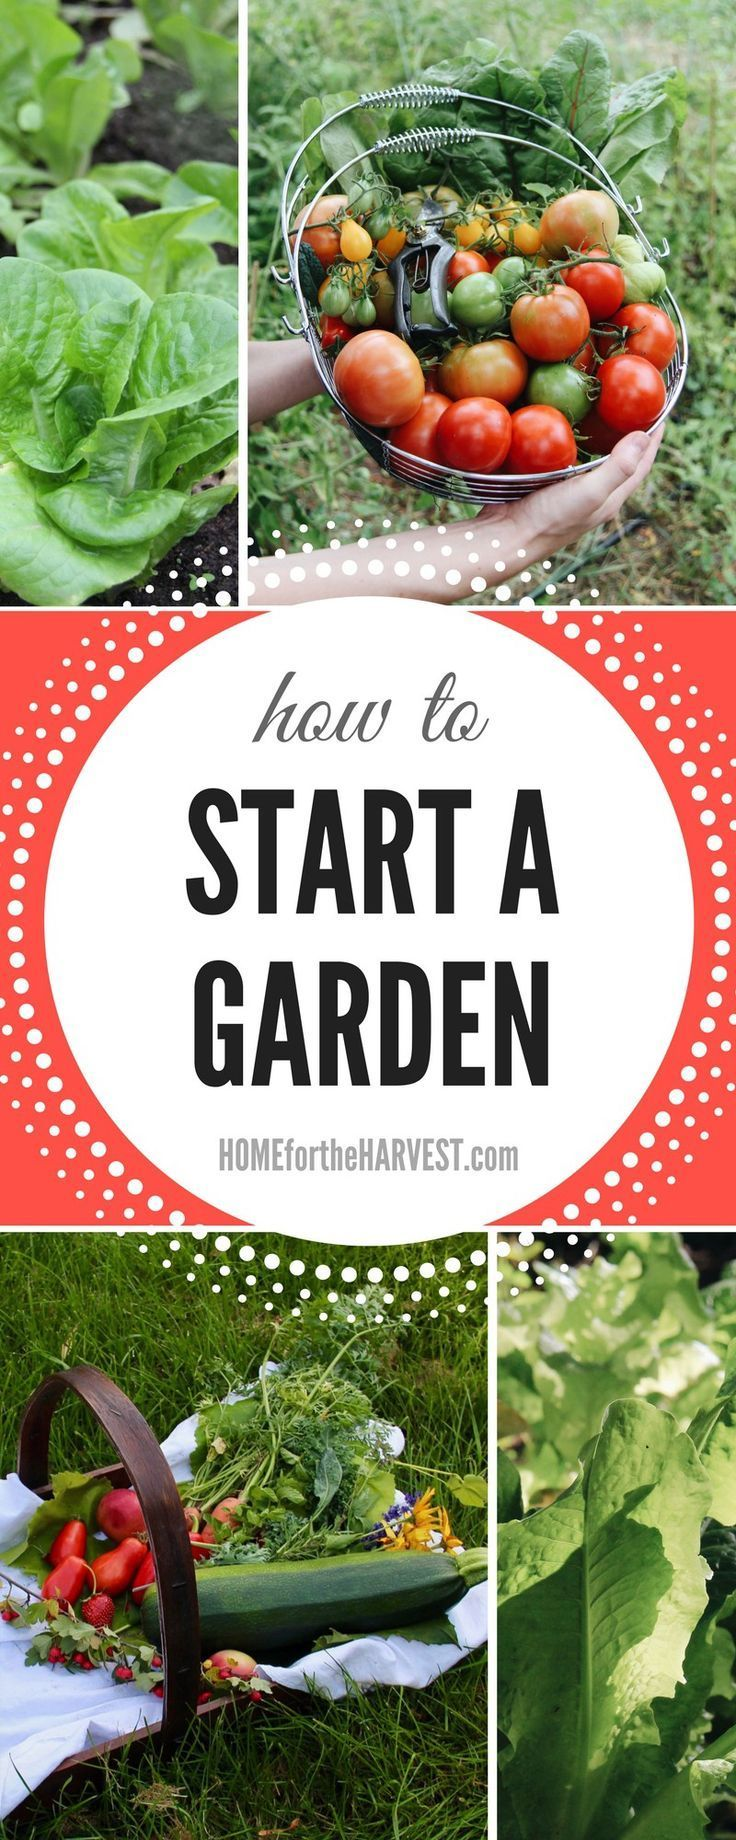 In-depth tutorial about how to start your first garden - Includes Garden Planning, Planting, Care, and Harvest  - All Organic   Home for the Harvest #howtostartagarden #startagarden #gardening #garden #organicgardening #learntogarden #howtogarden #beginnergardening #gardeningforbeginners